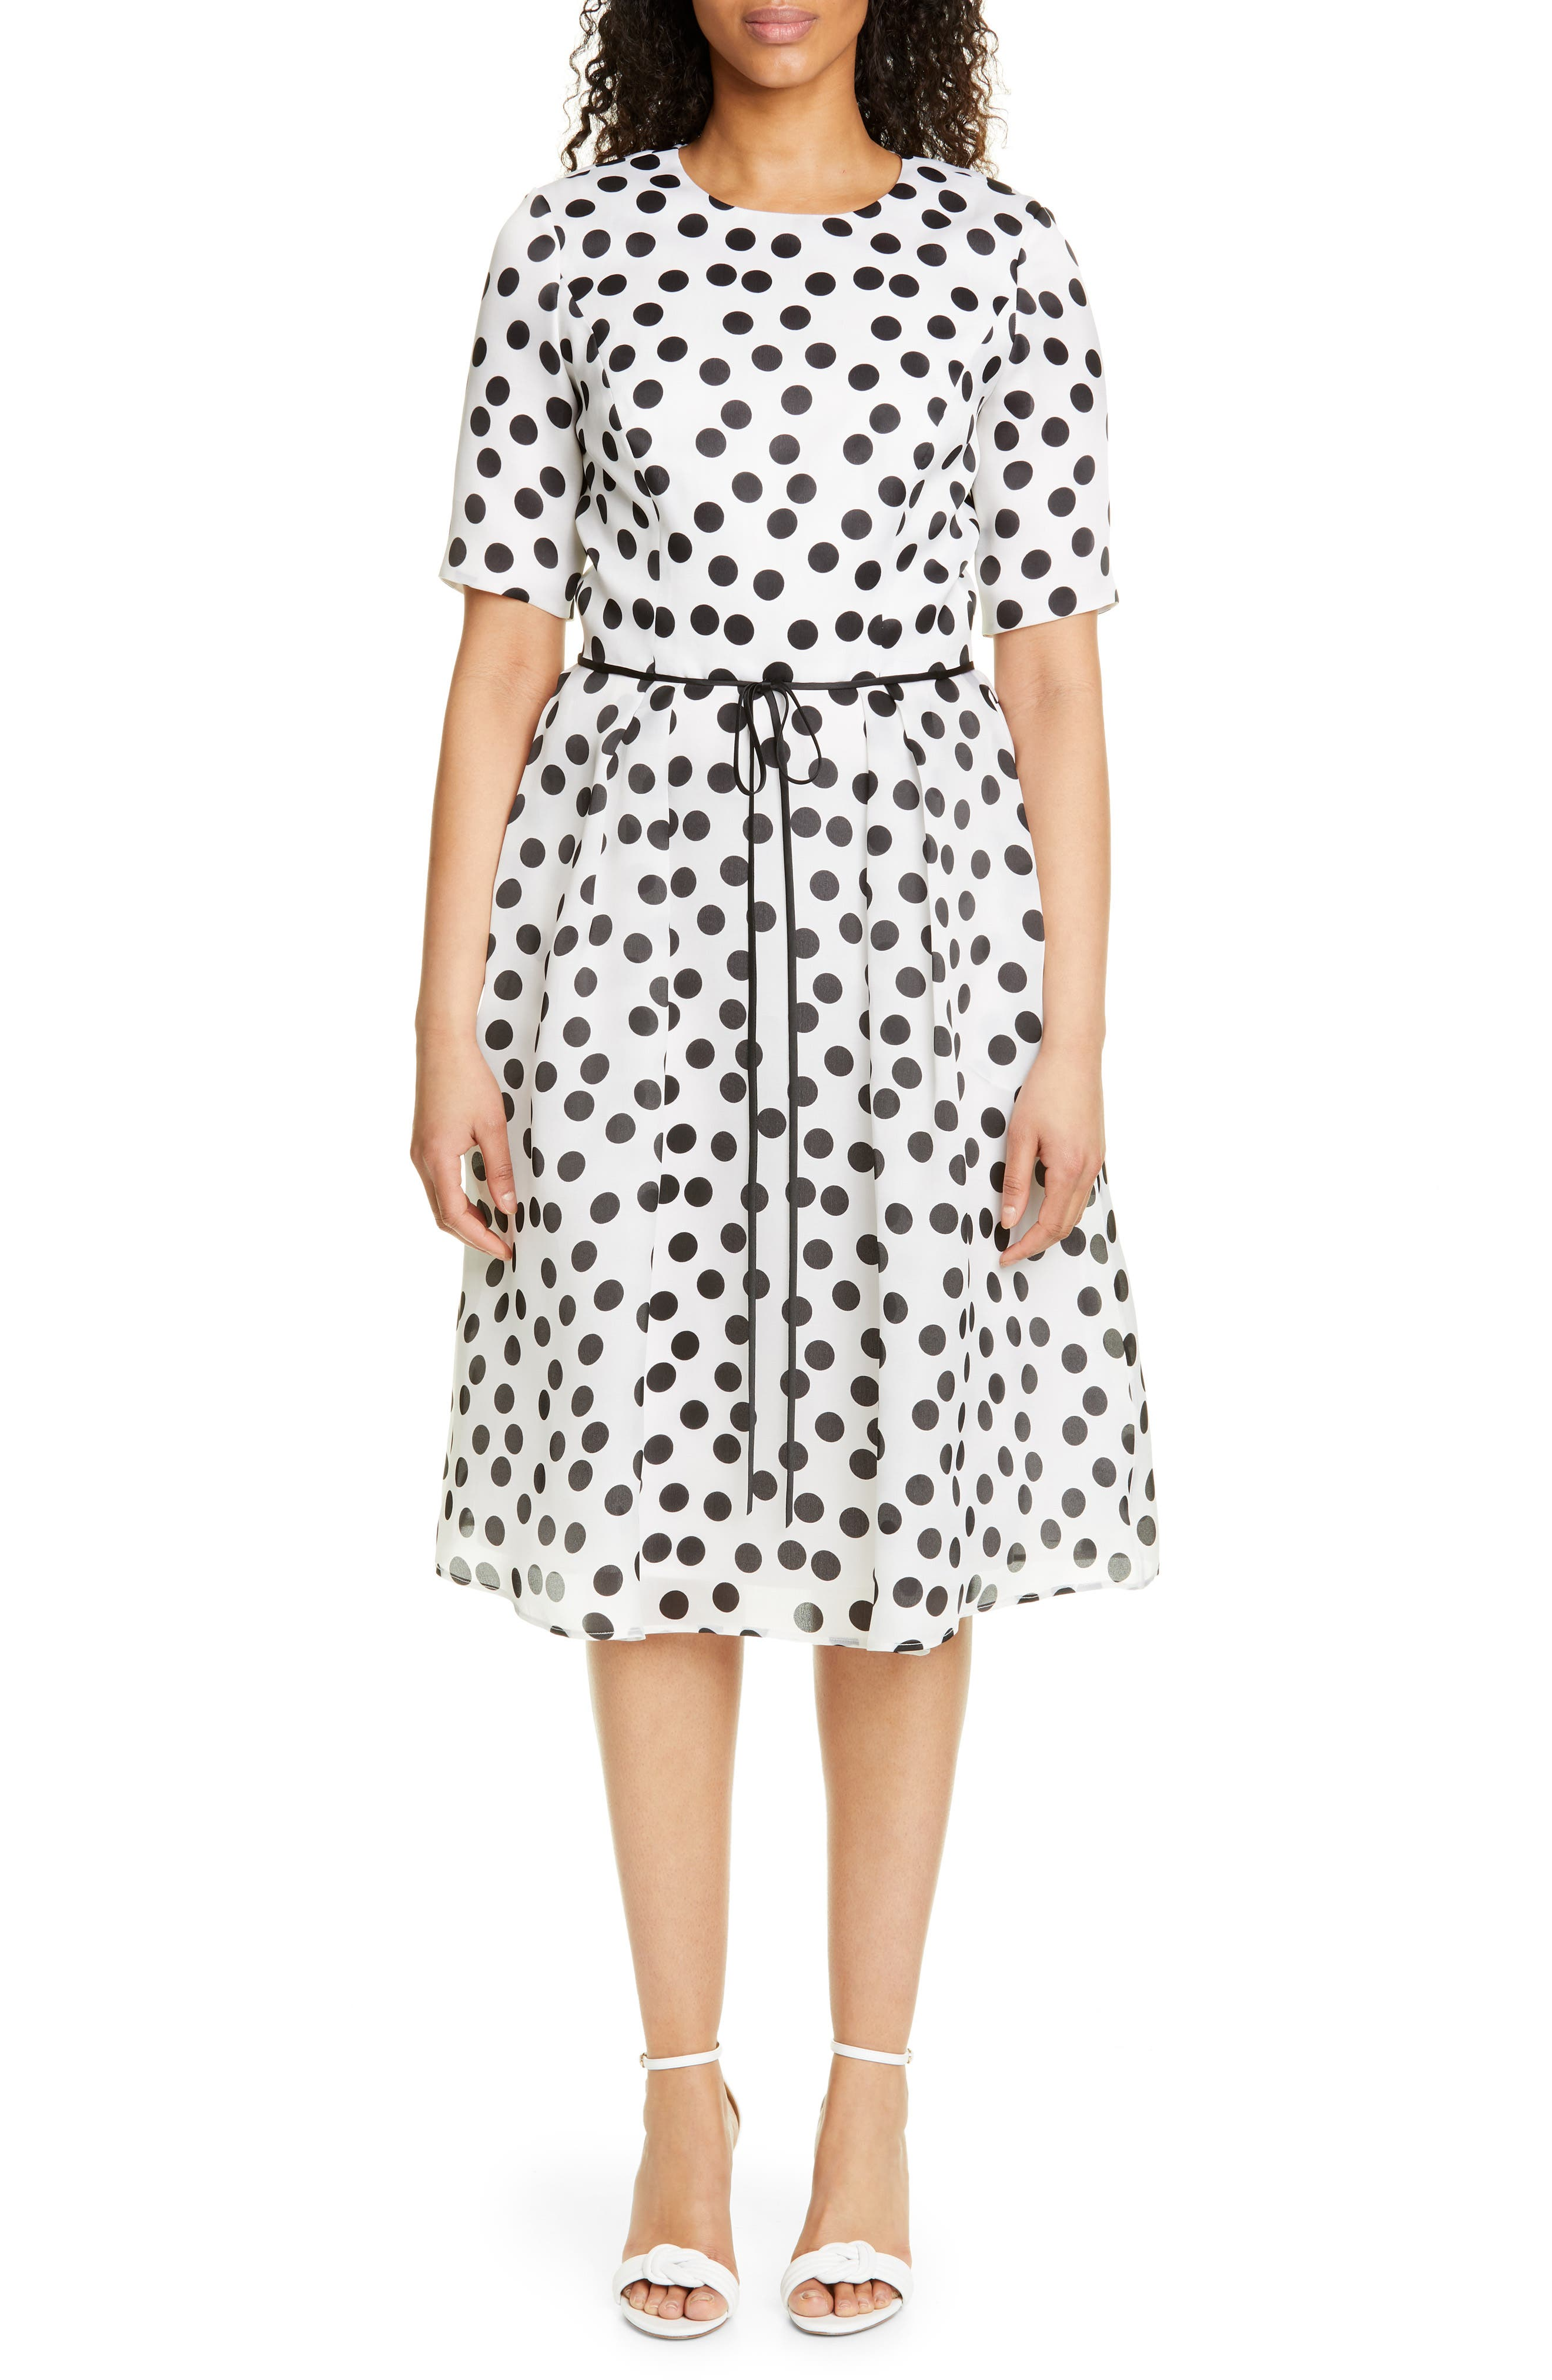 Carolina Herrera Polka Dot Silk Chiffon Cocktail Dress